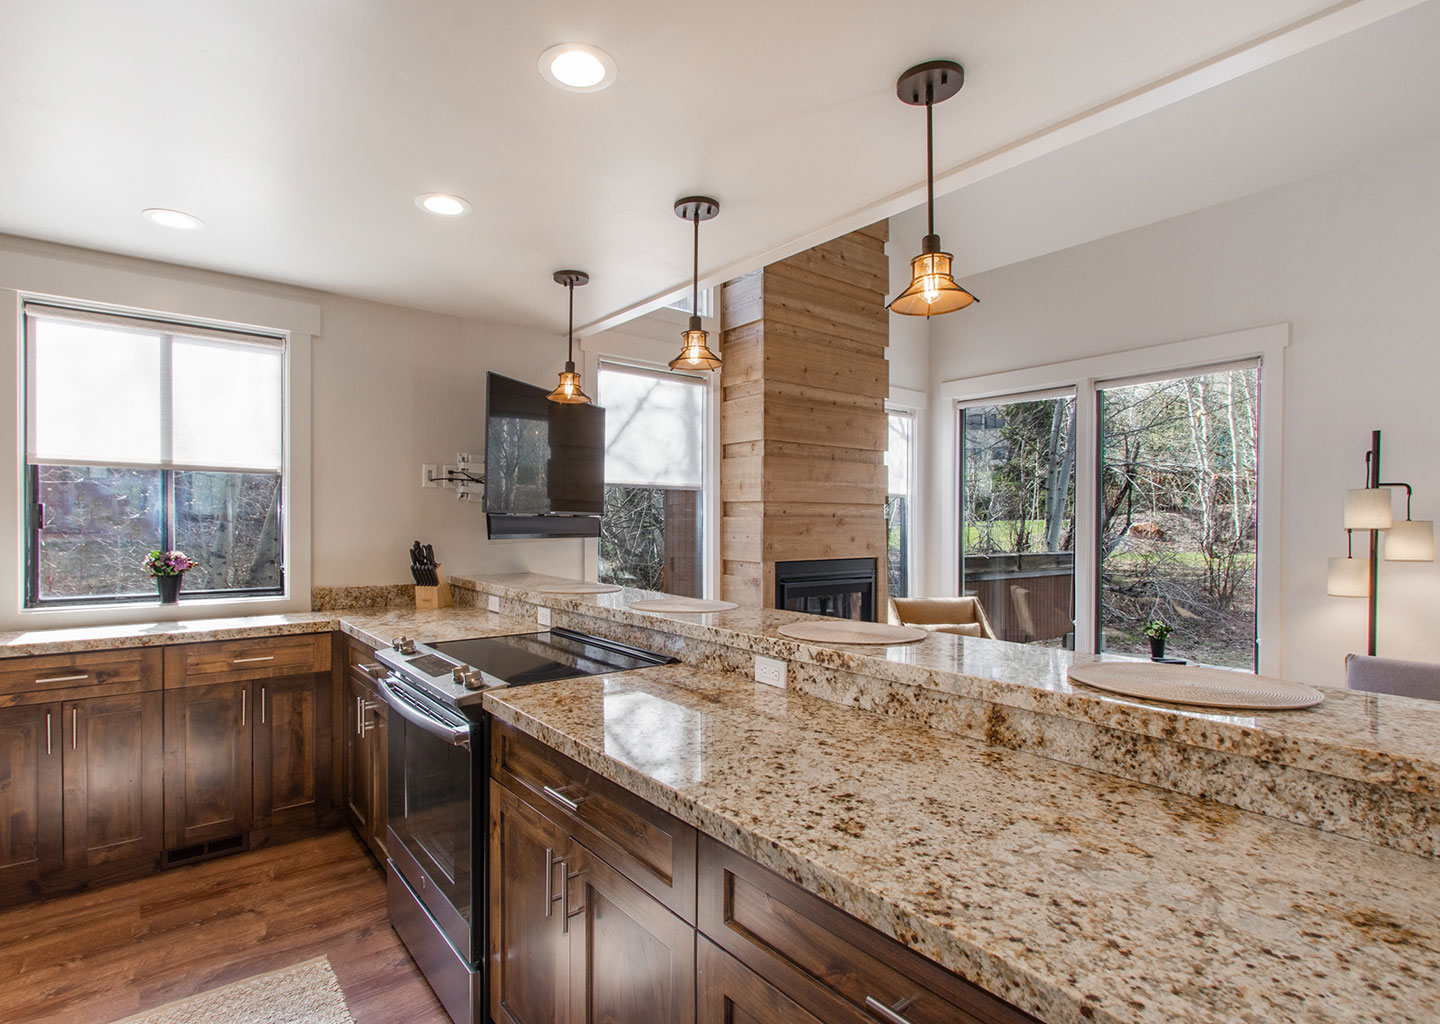 Kitchen with Granite Countertops Overlooking the Living Room at Three Kings Condominiums in Downtown Park City, Utah